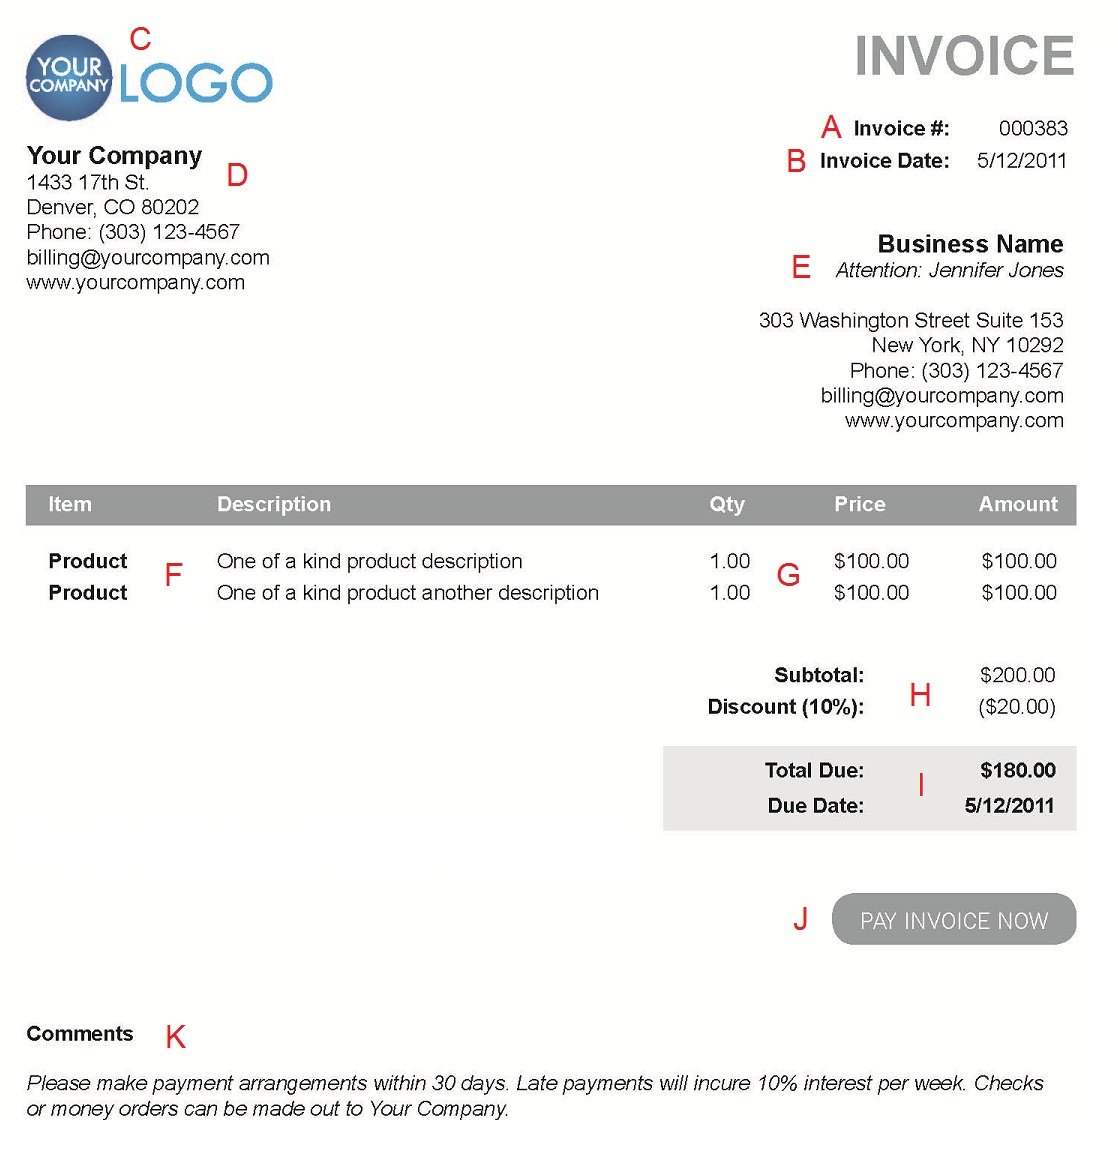 Hucareus  Splendid The  Different Sections Of An Electronic Payment Invoice With Marvelous A  With Astounding Hsbc Invoice Also Invoice Google Drive In Addition Invoice Generator Software Free And How To Write A Proforma Invoice As Well As Free Software For Invoice For Business Additionally Invoice Book Template From Paysimplecom With Hucareus  Marvelous The  Different Sections Of An Electronic Payment Invoice With Astounding A  And Splendid Hsbc Invoice Also Invoice Google Drive In Addition Invoice Generator Software Free From Paysimplecom